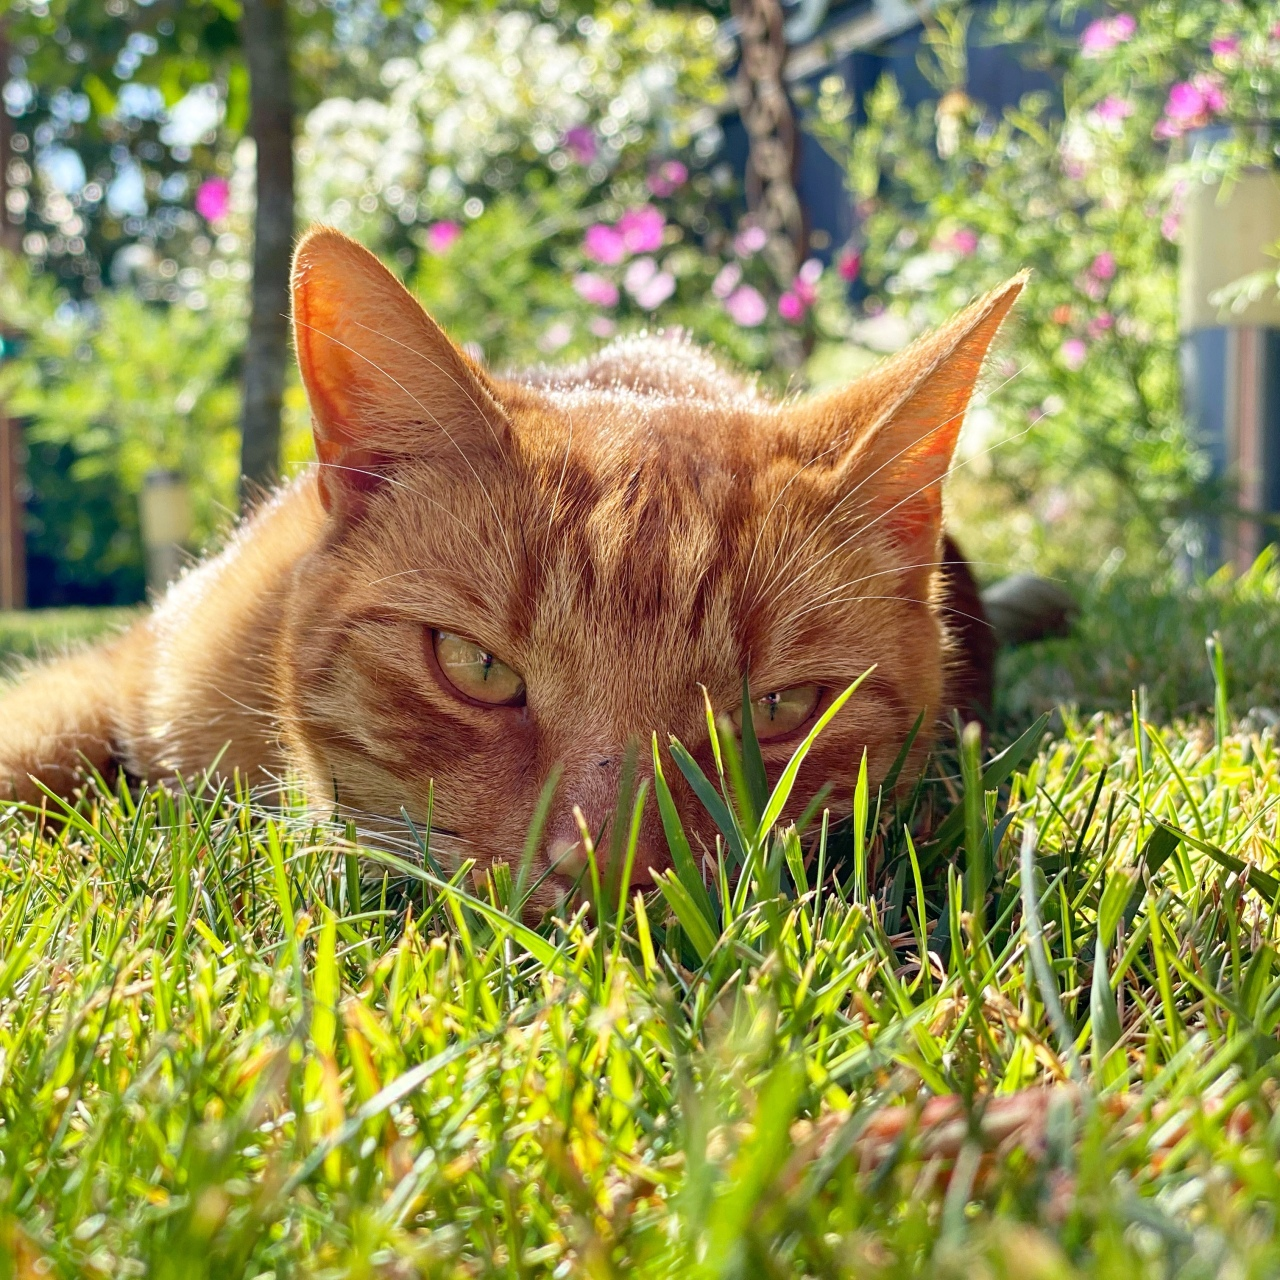 Jack the ginger cat is looking at the camera as he is lying down flat on the green grass with summer flowers in bloom behind him